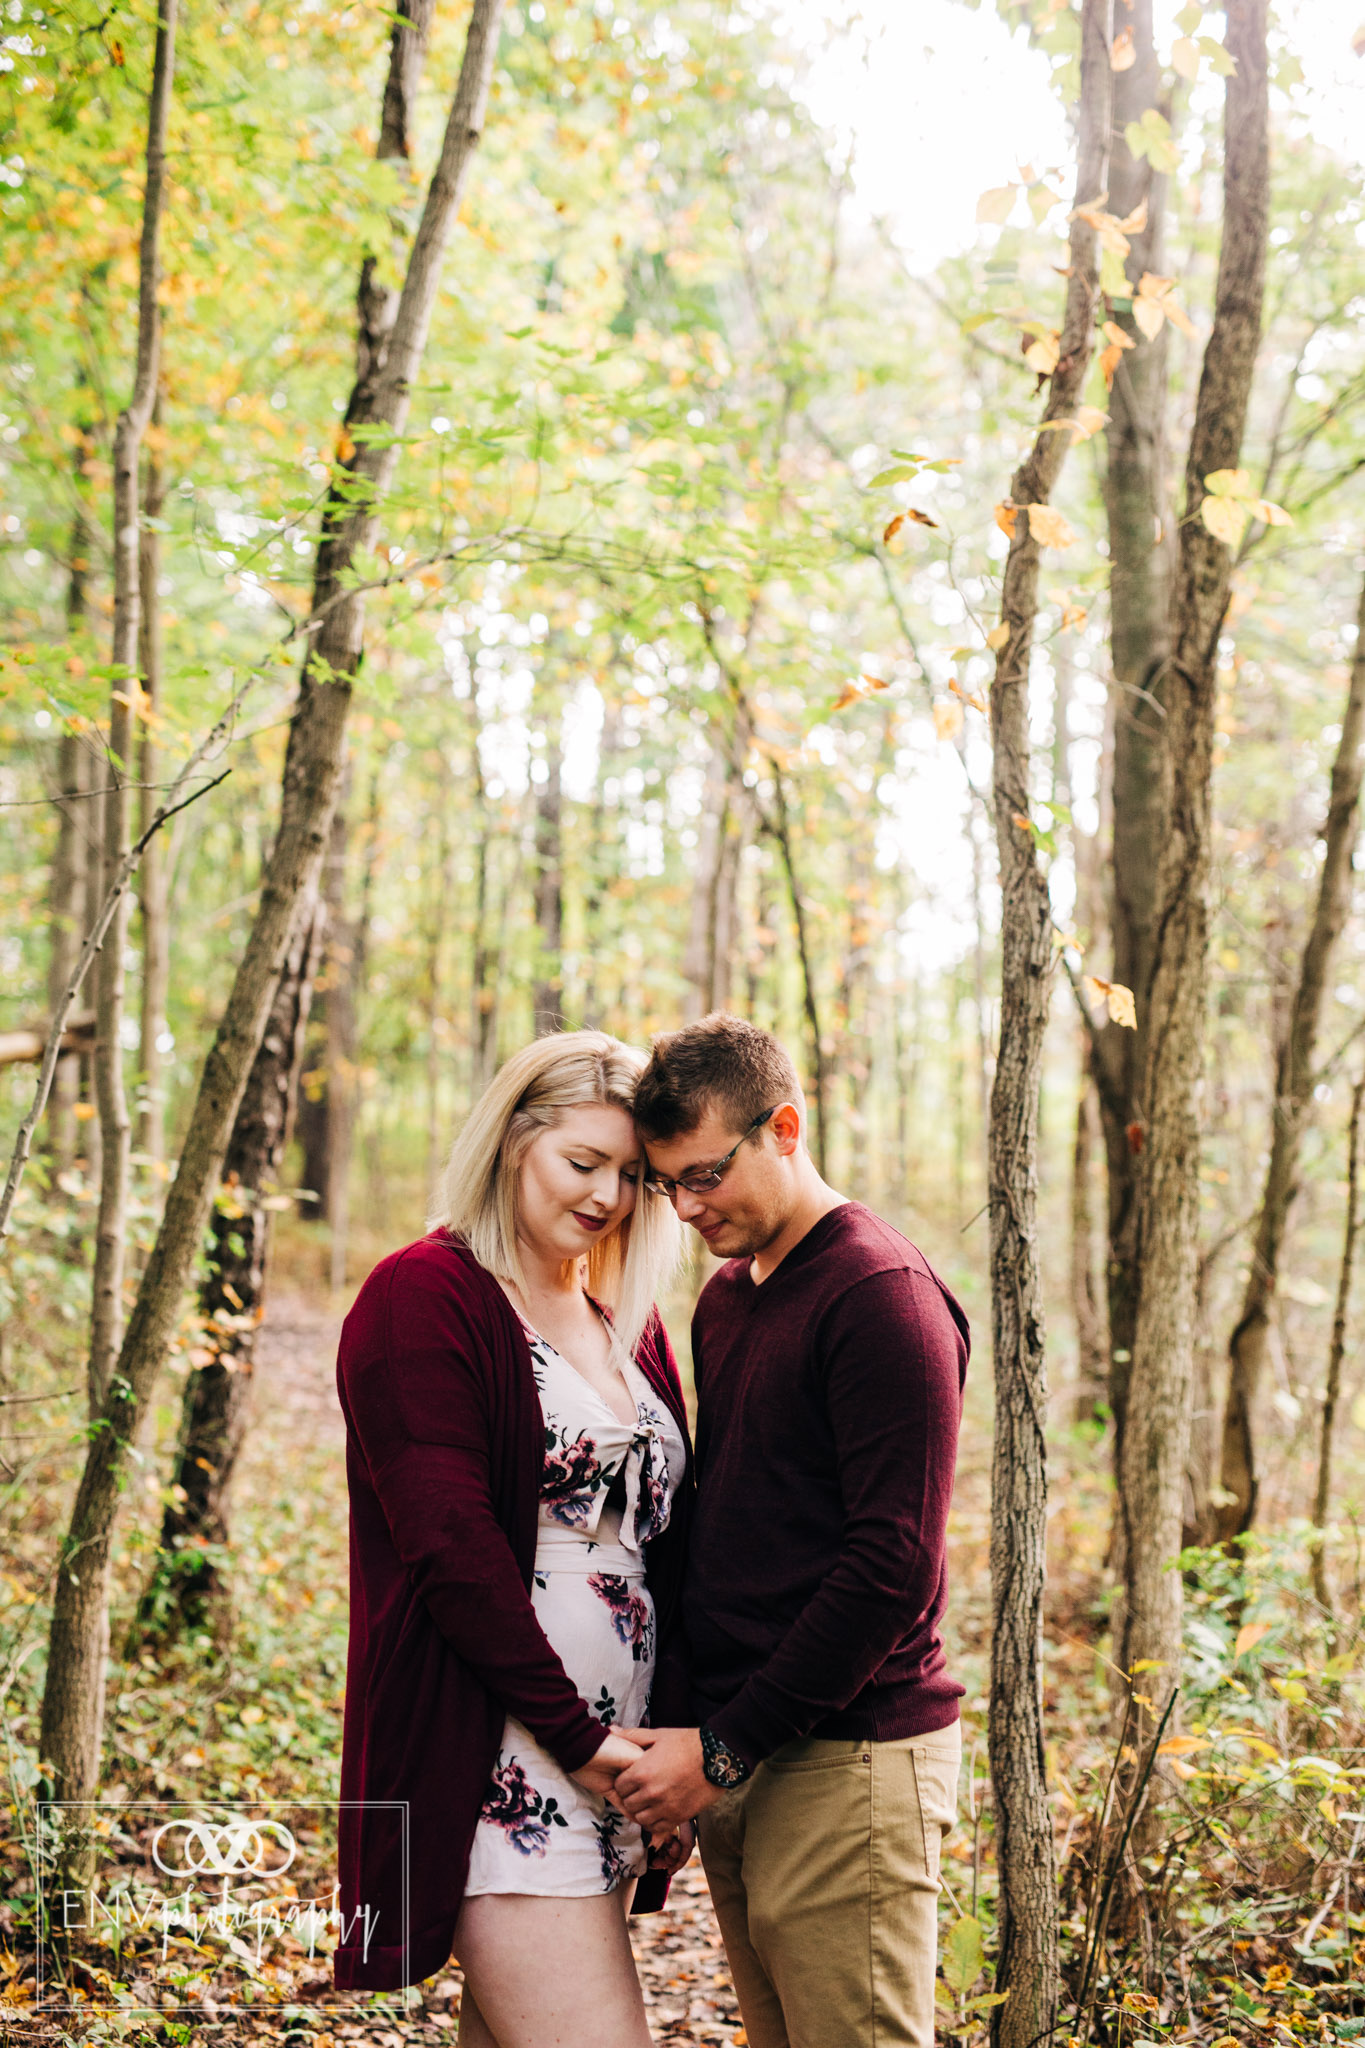 Mount Vernon Ohio Columbus Ohio engagement photography (4).jpg